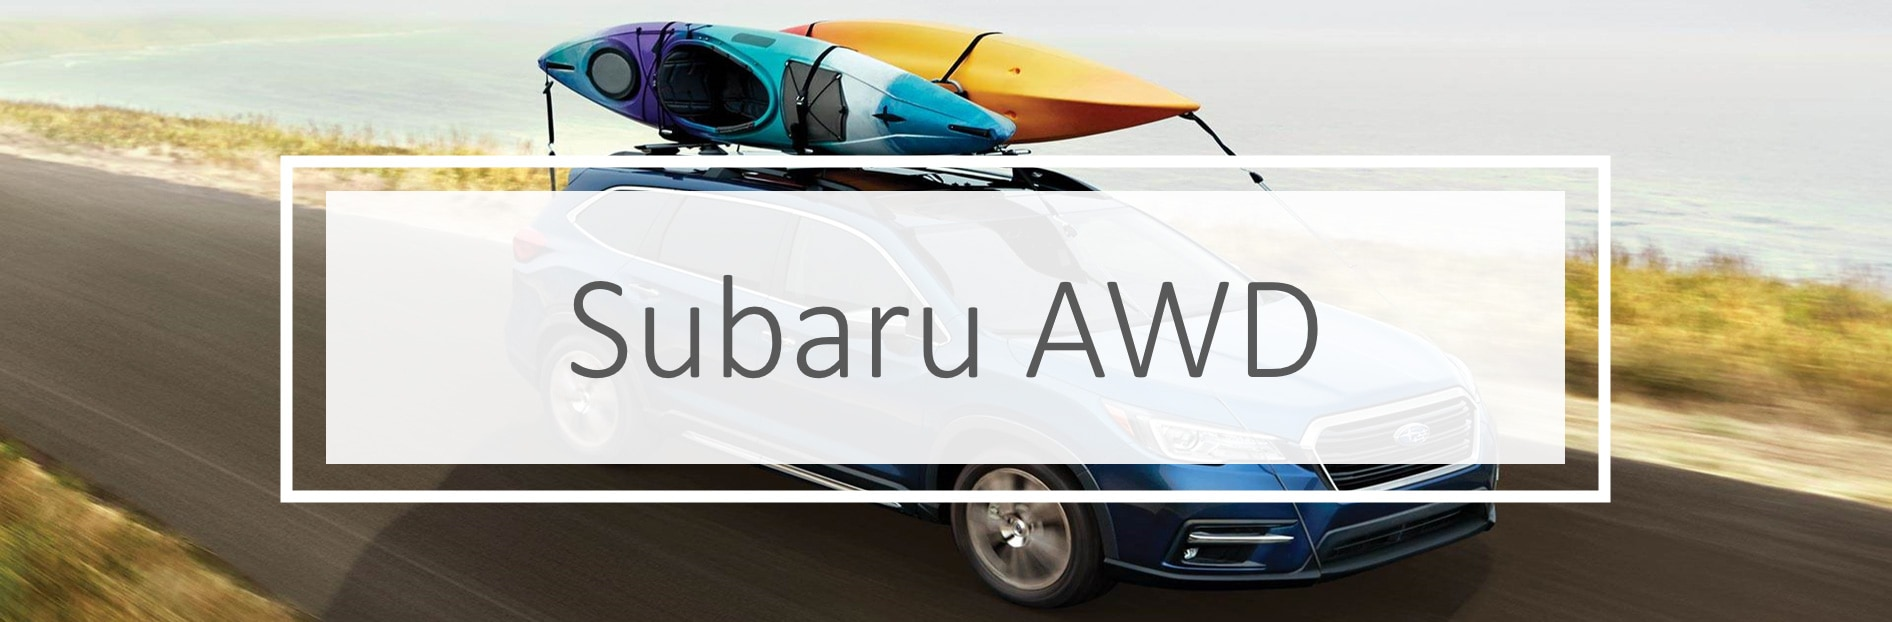 Does Subaru have AWD?